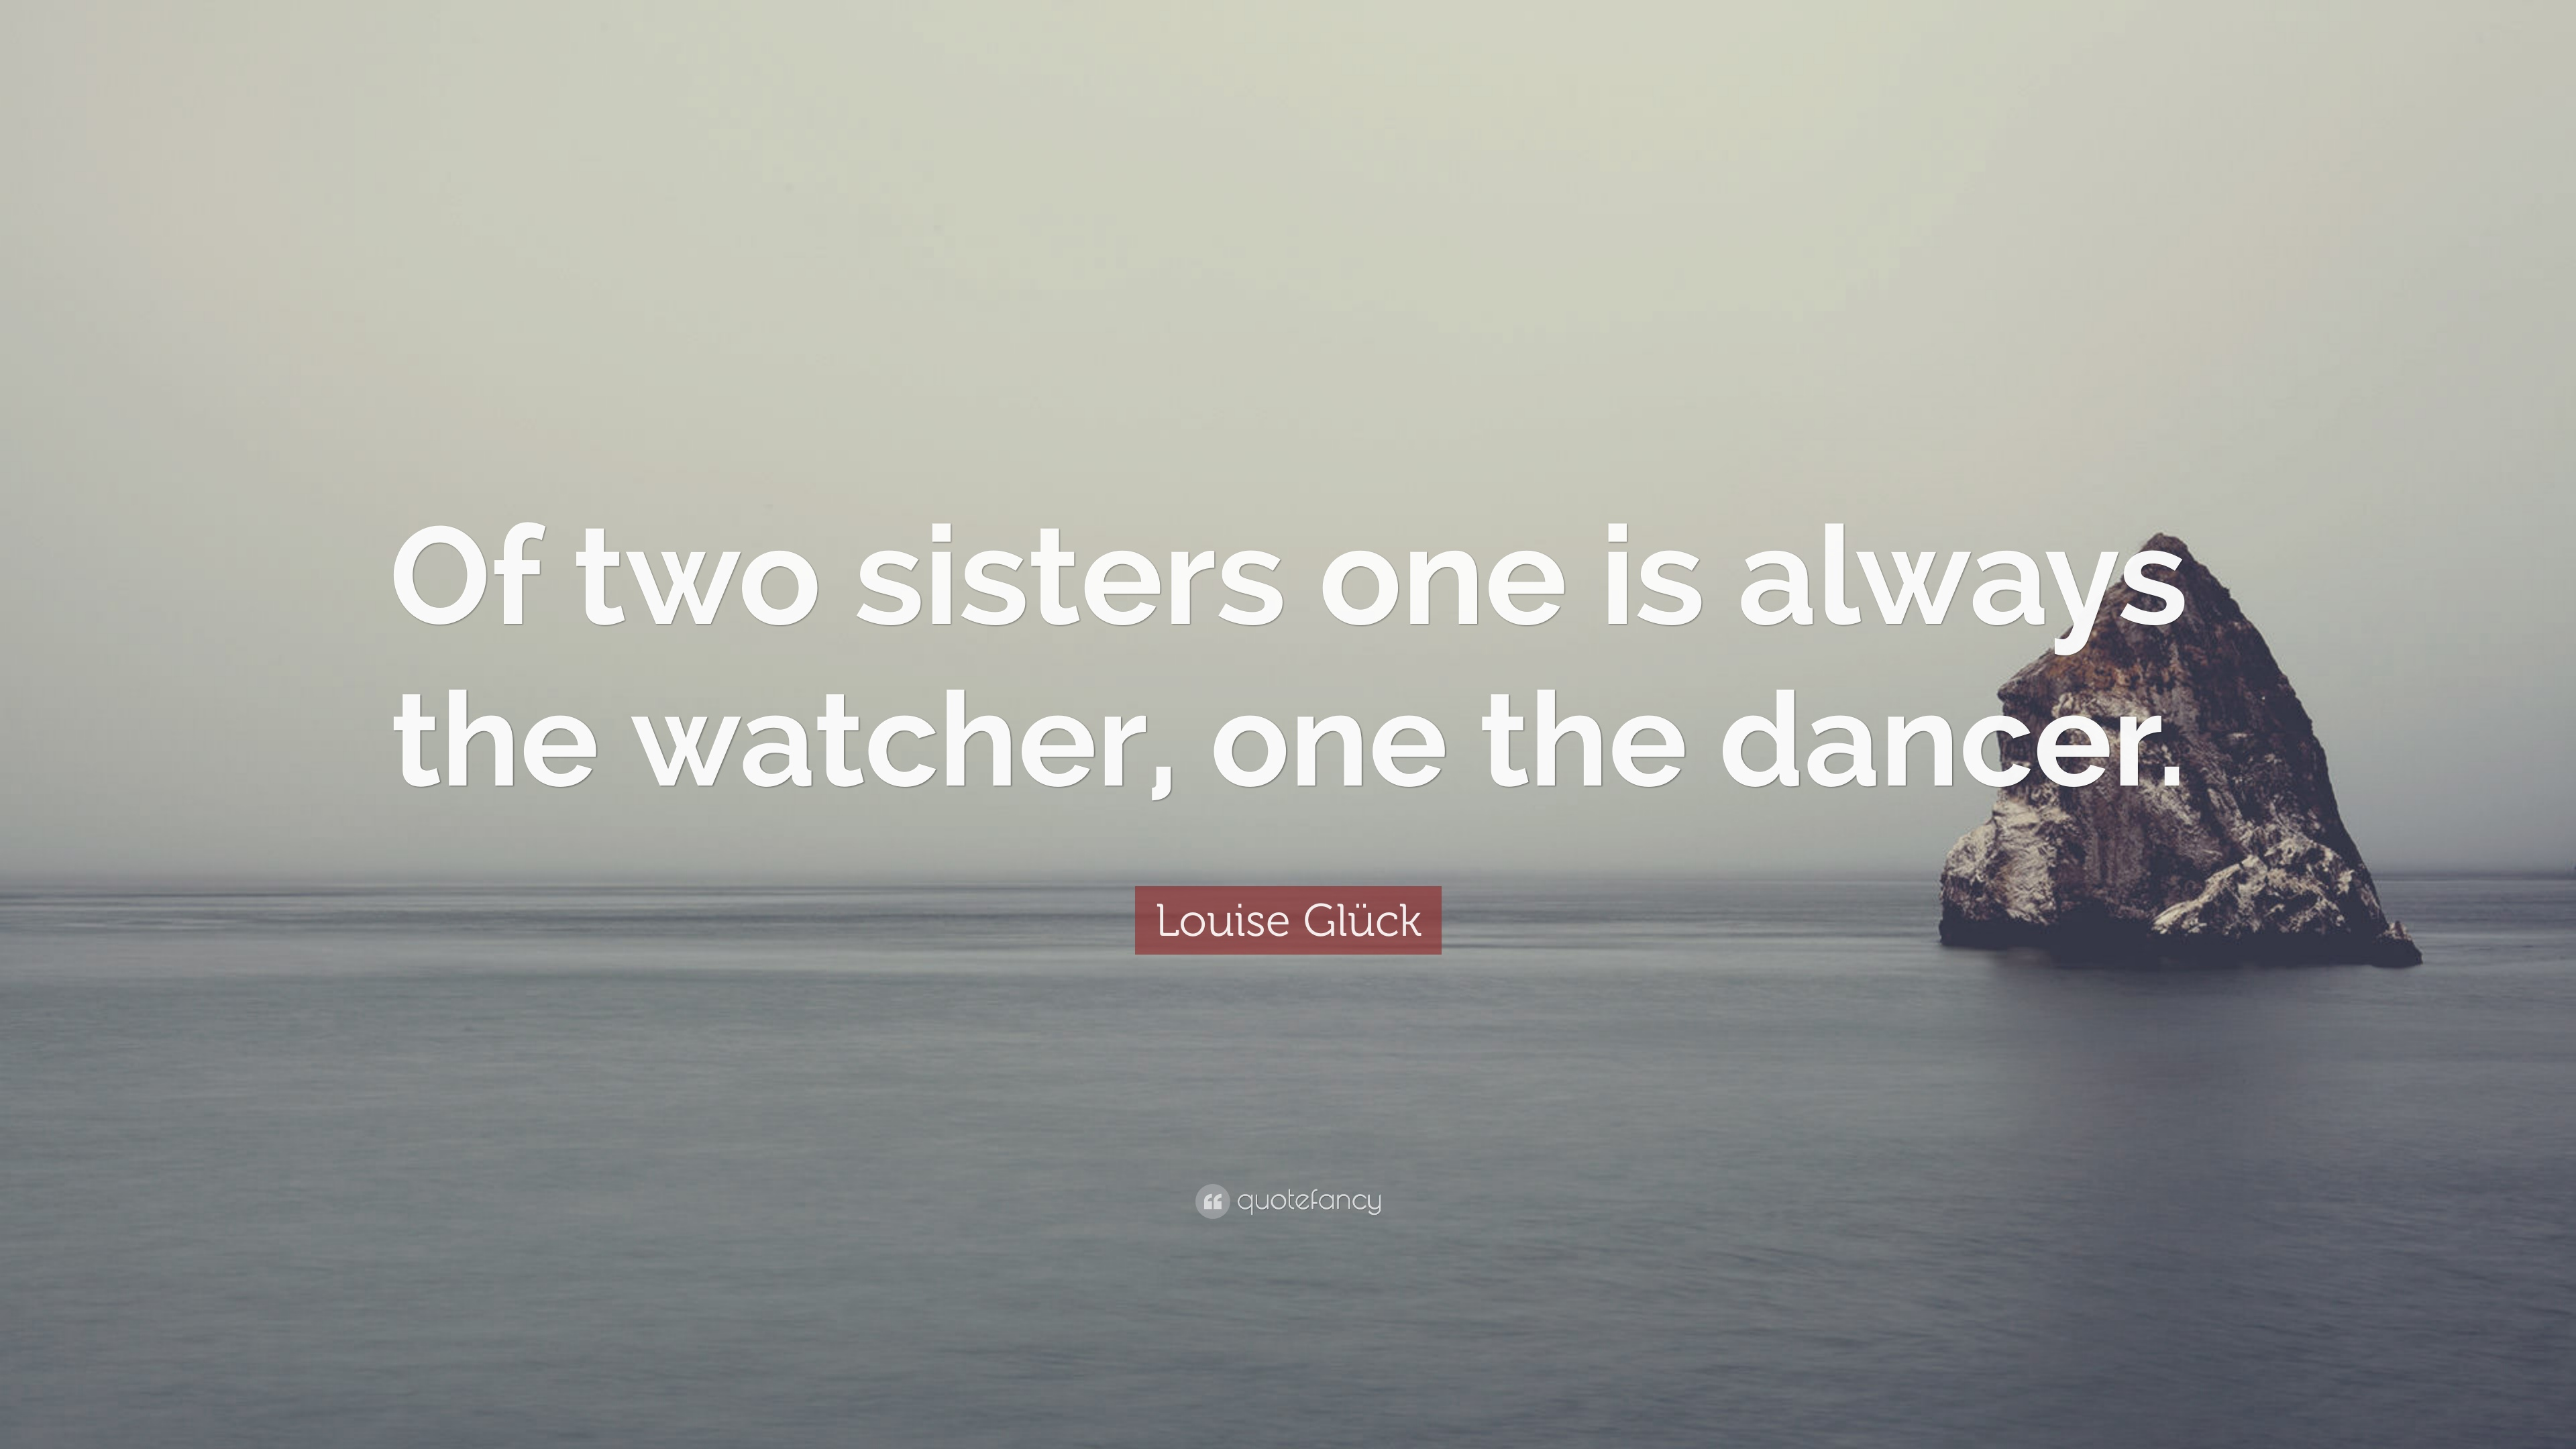 Louise Gluck Quote Of Two Sisters One Is Always The Watcher One The Dancer 10 Wallpapers Quotefancy